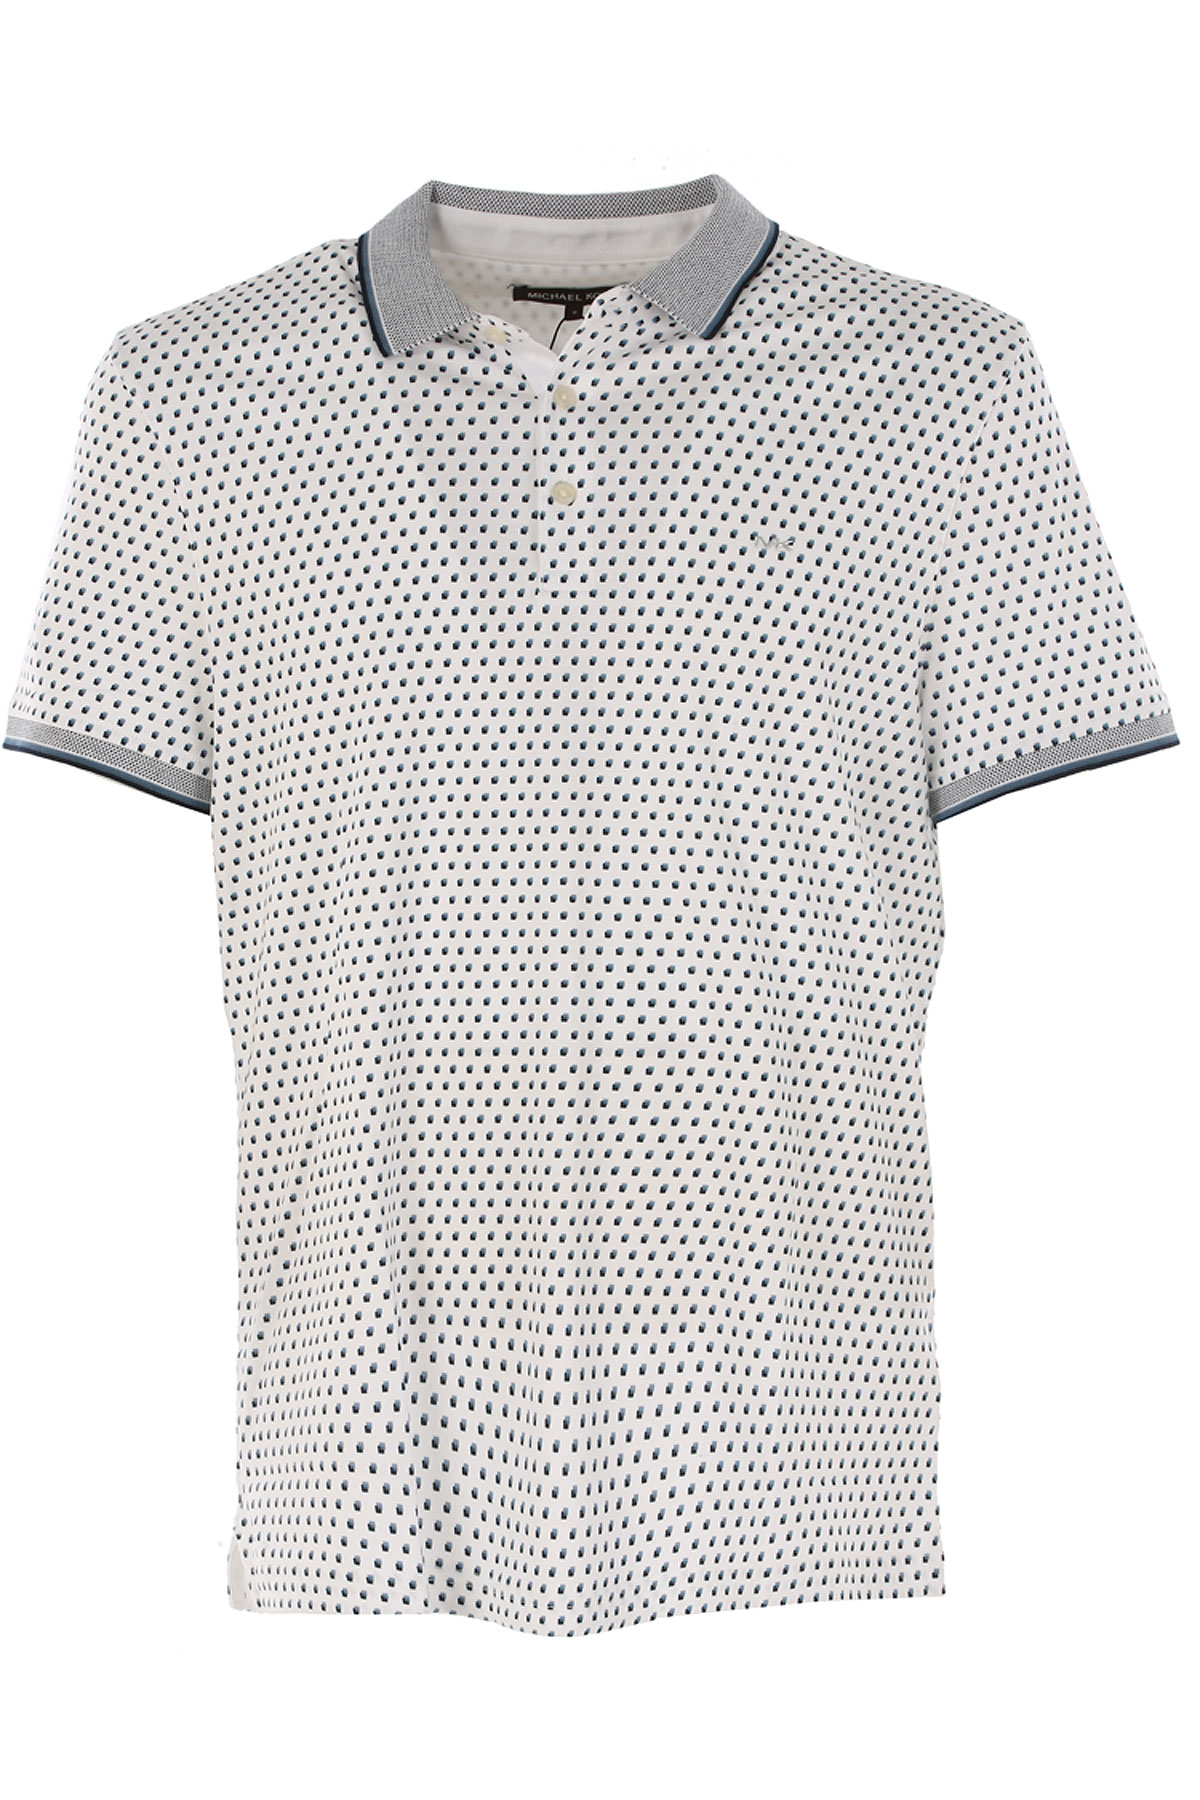 Michael Kors Polo Shirt for Men On Sale in Outlet, White, Cotton, 2019, L M S